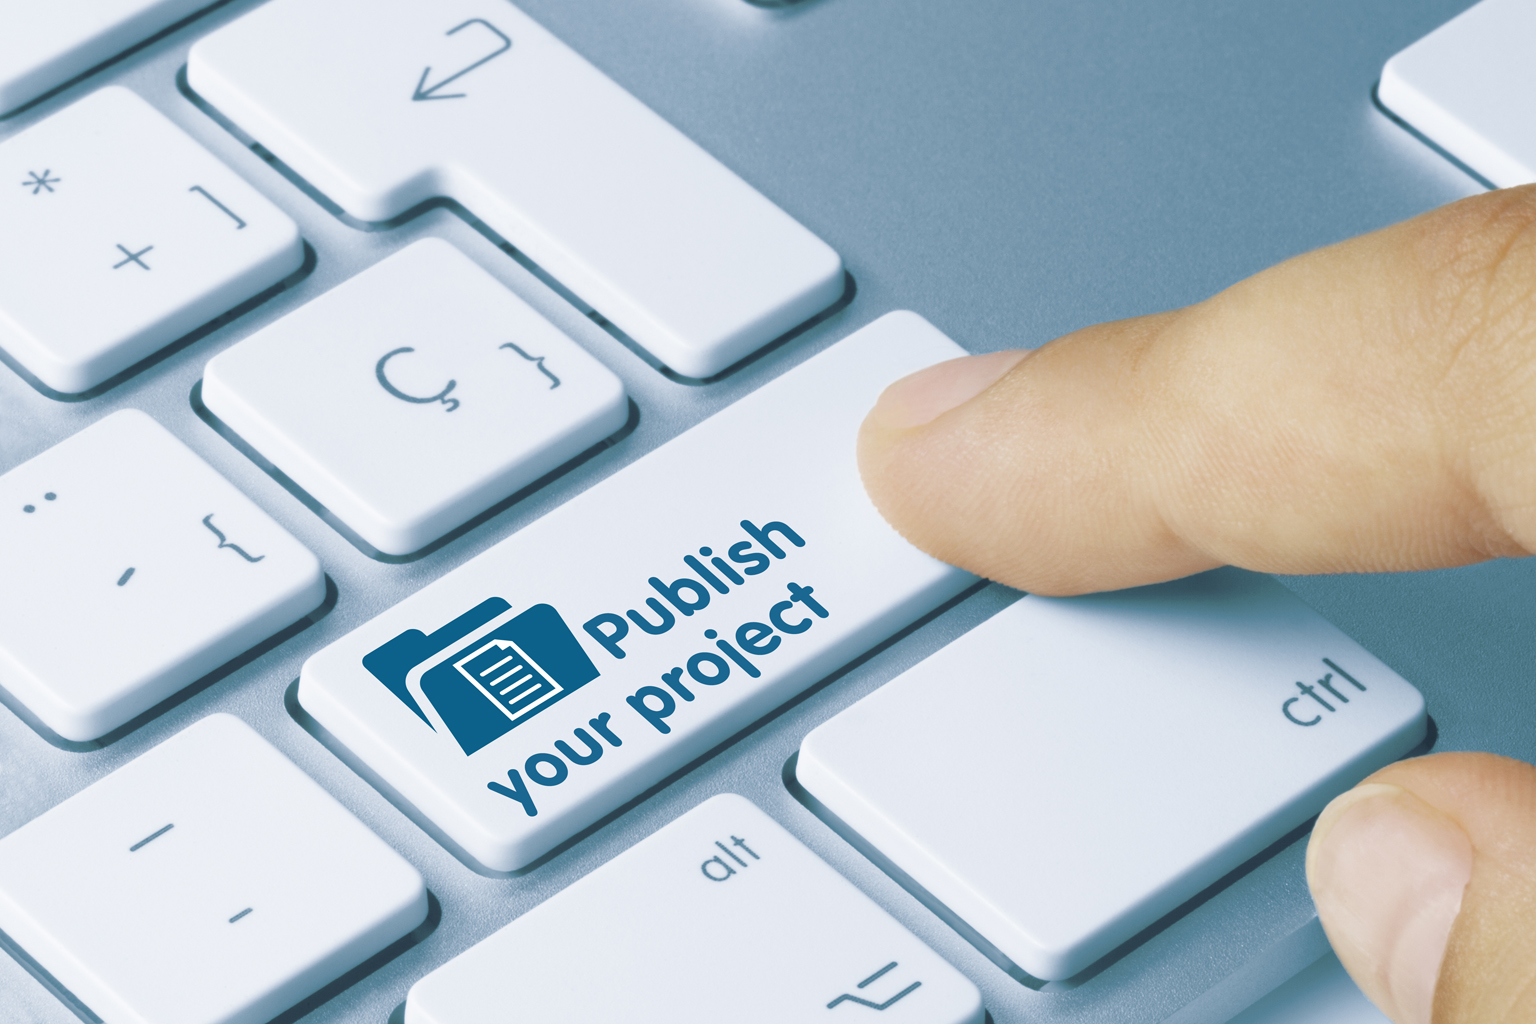 Finger pushing keyboard button that says Publish your project